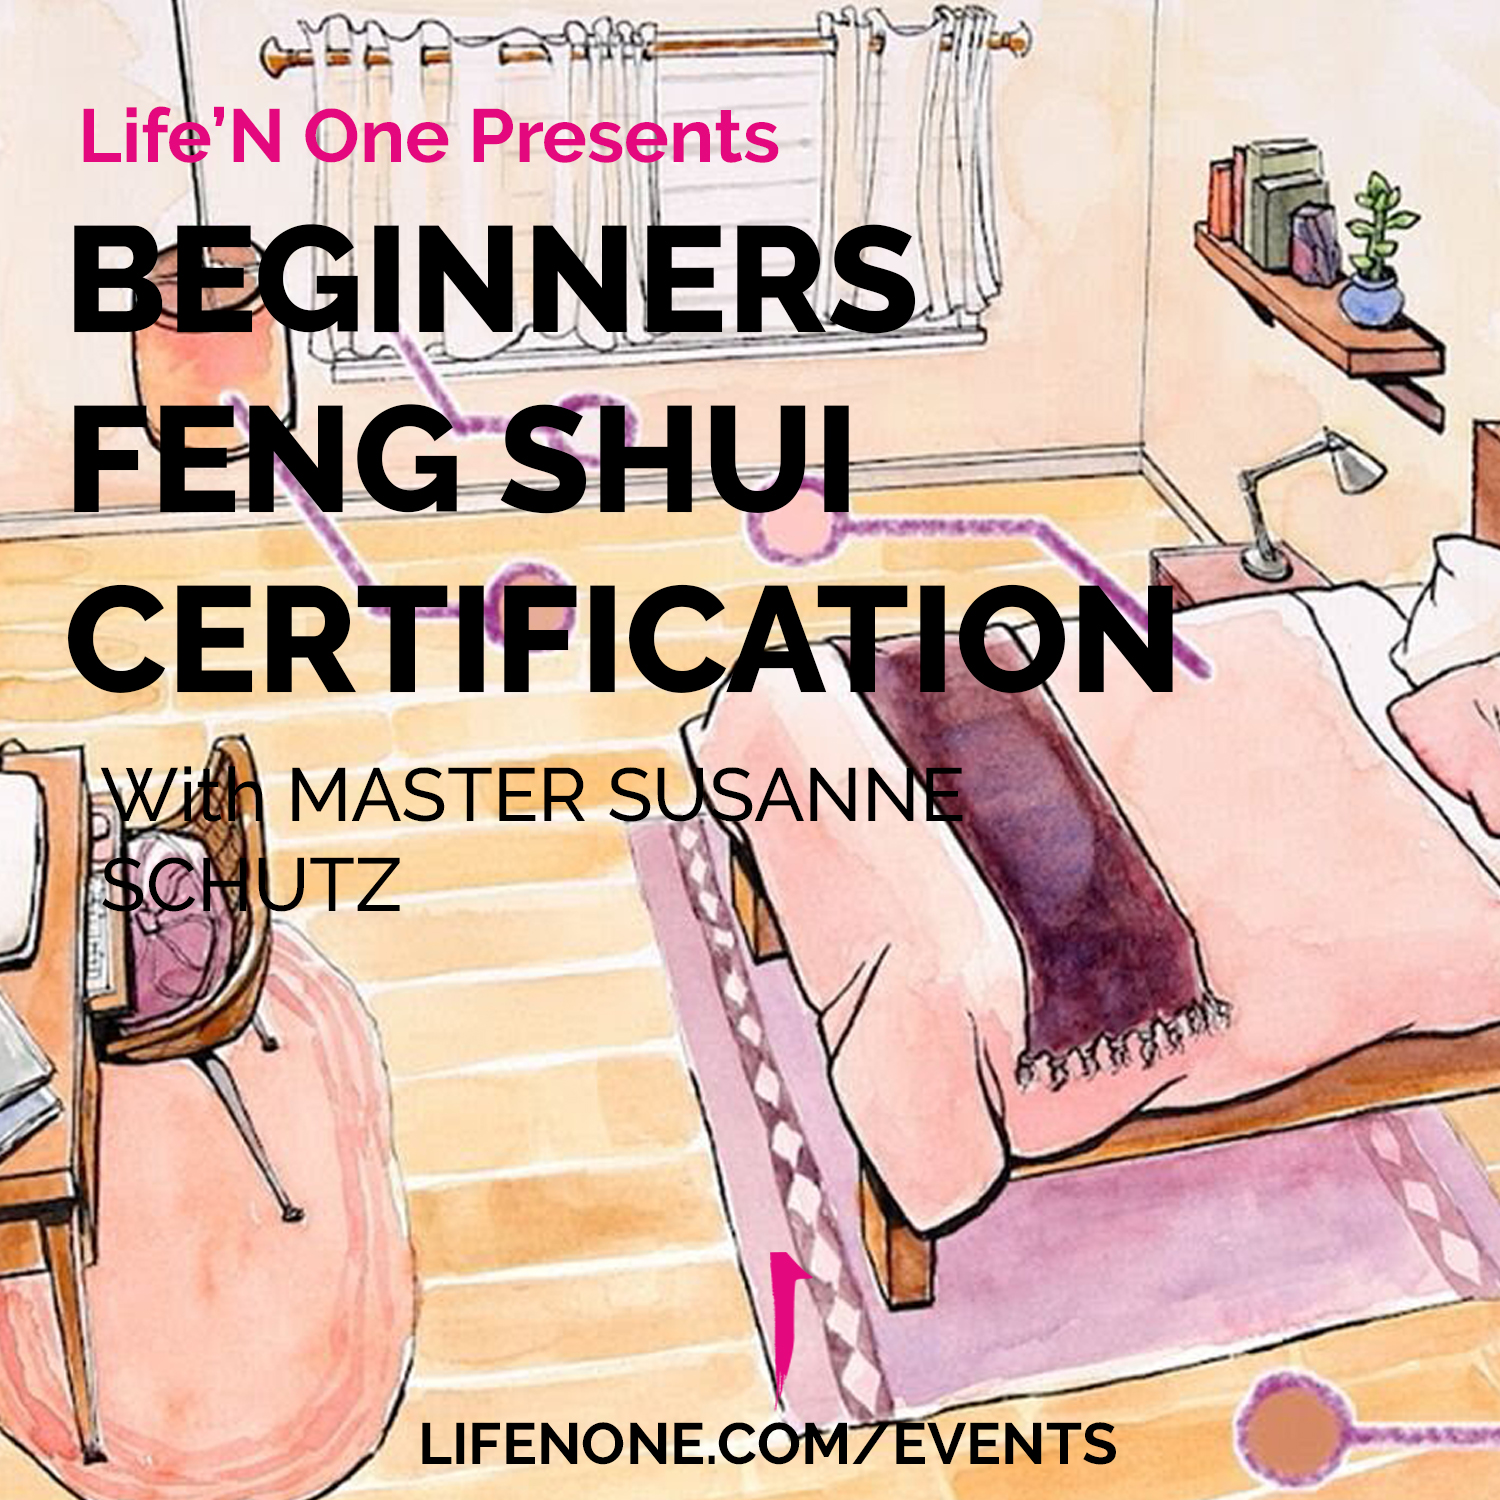 SQ_BEGINNERS FENG SHUI CERTIFICATION.jpg